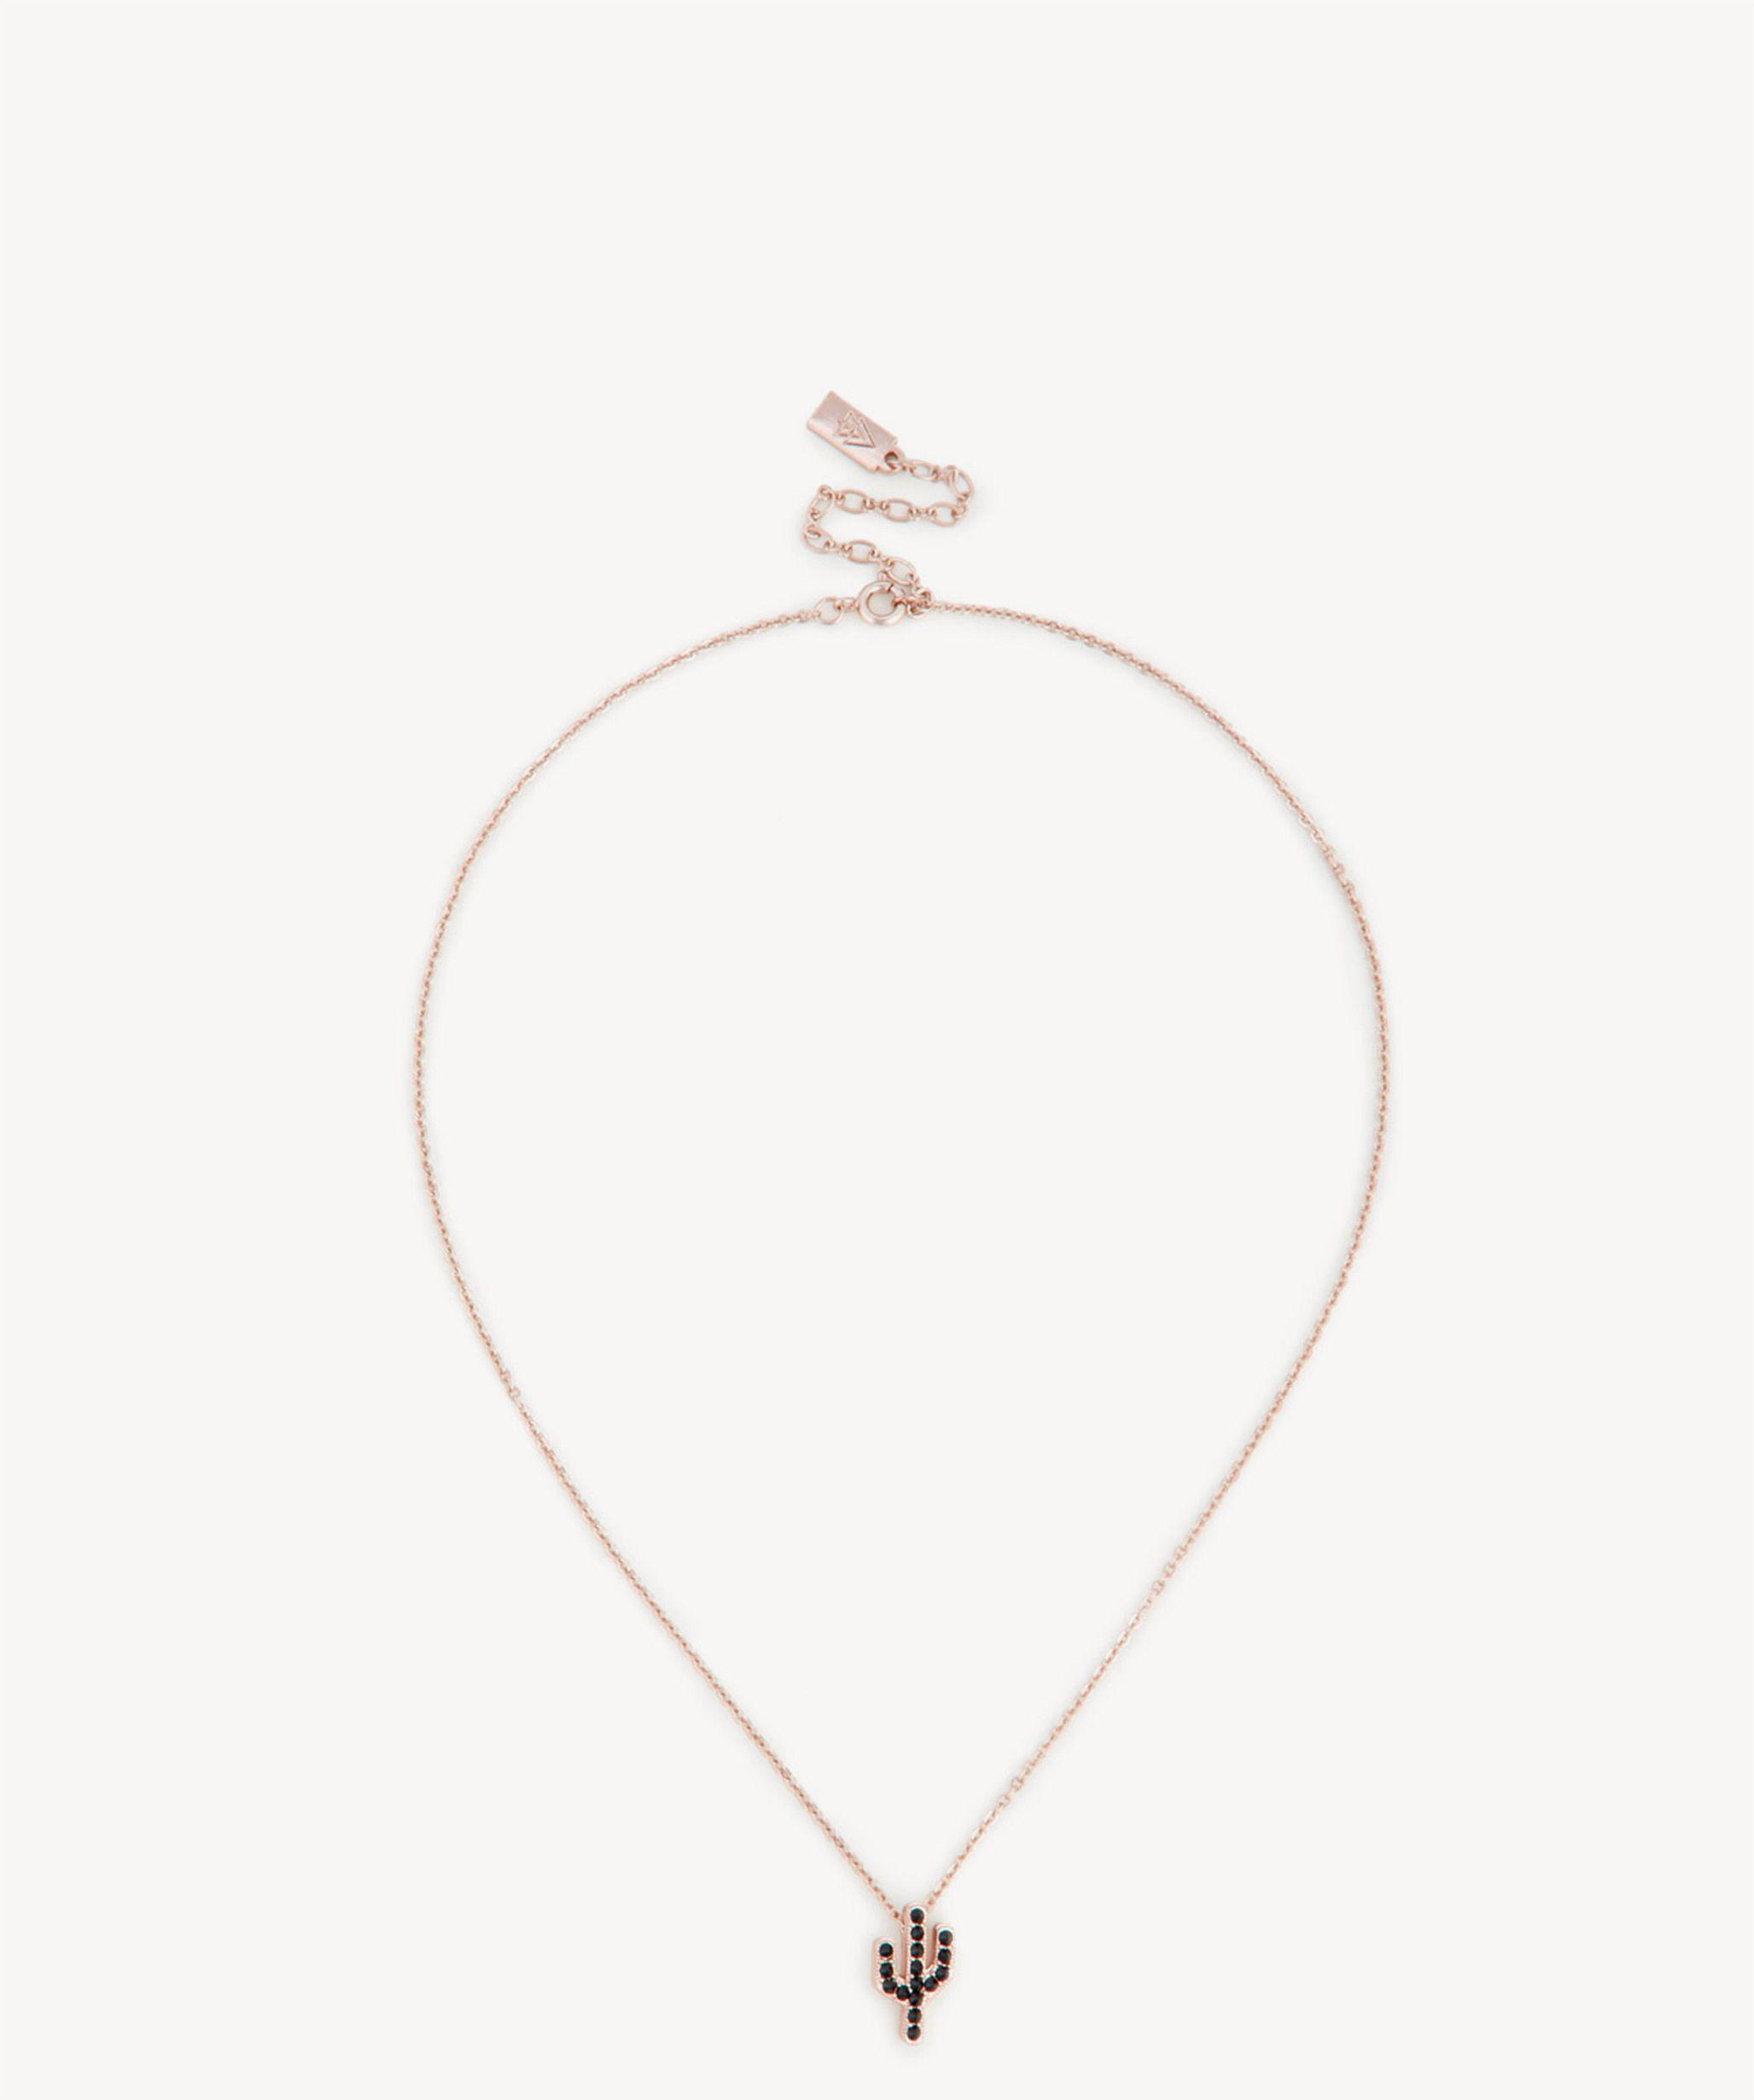 Sole Society Womens Cactus Necklace Rose Gold One Size From Sole Society GP70I0g